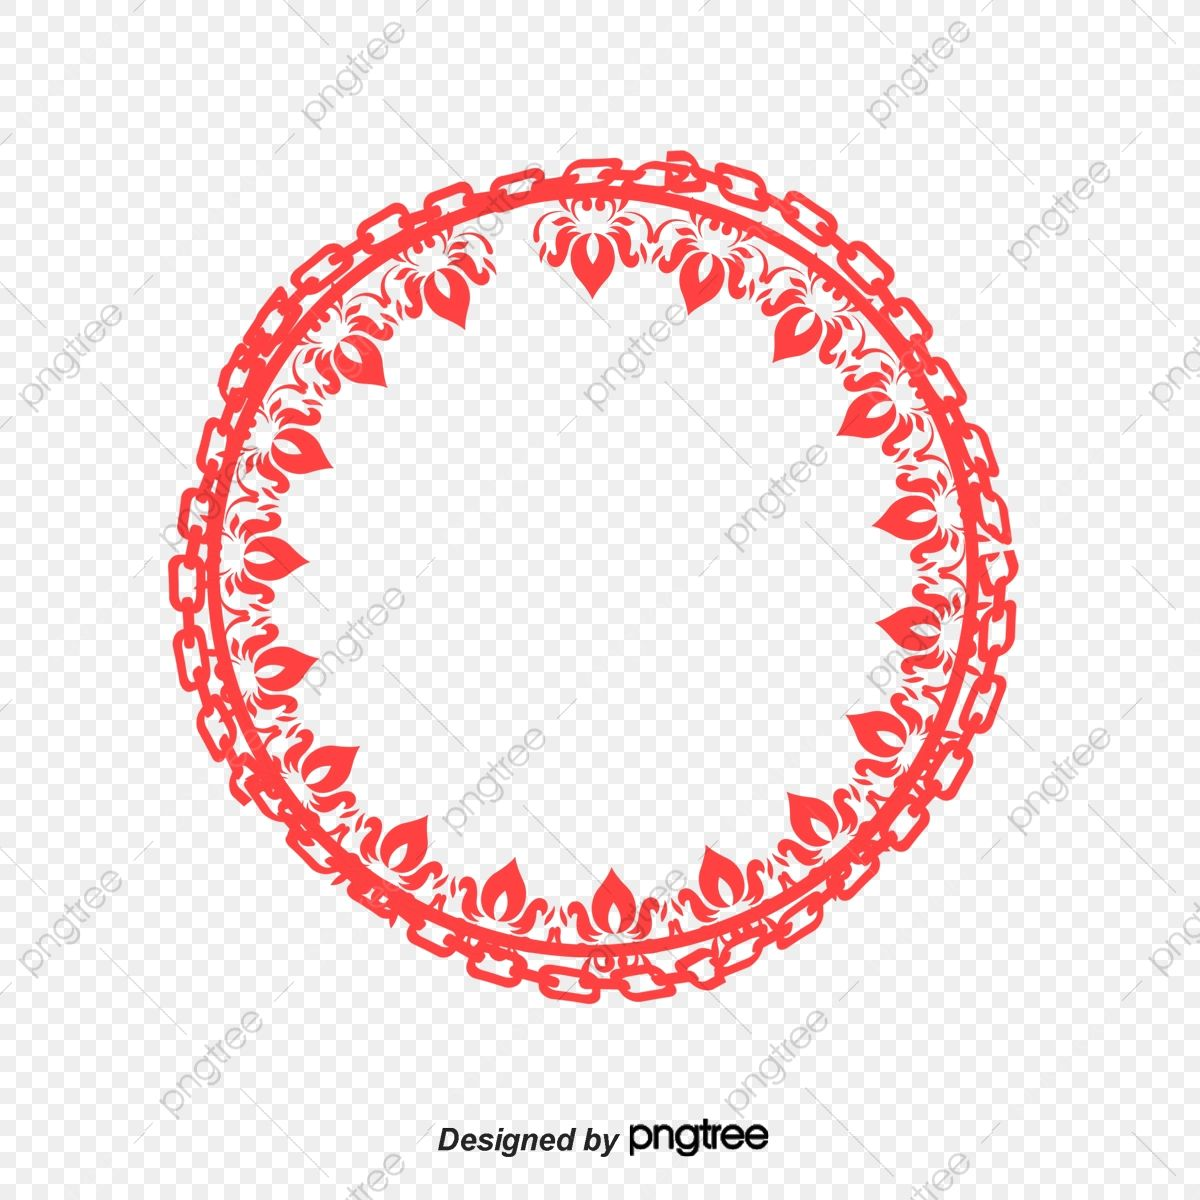 Chinese Red Chinese Circular Border Png Picture China Red Round Frame Png Transparent Clipart Image And Psd File For Free Download Clip Art Png Pictures